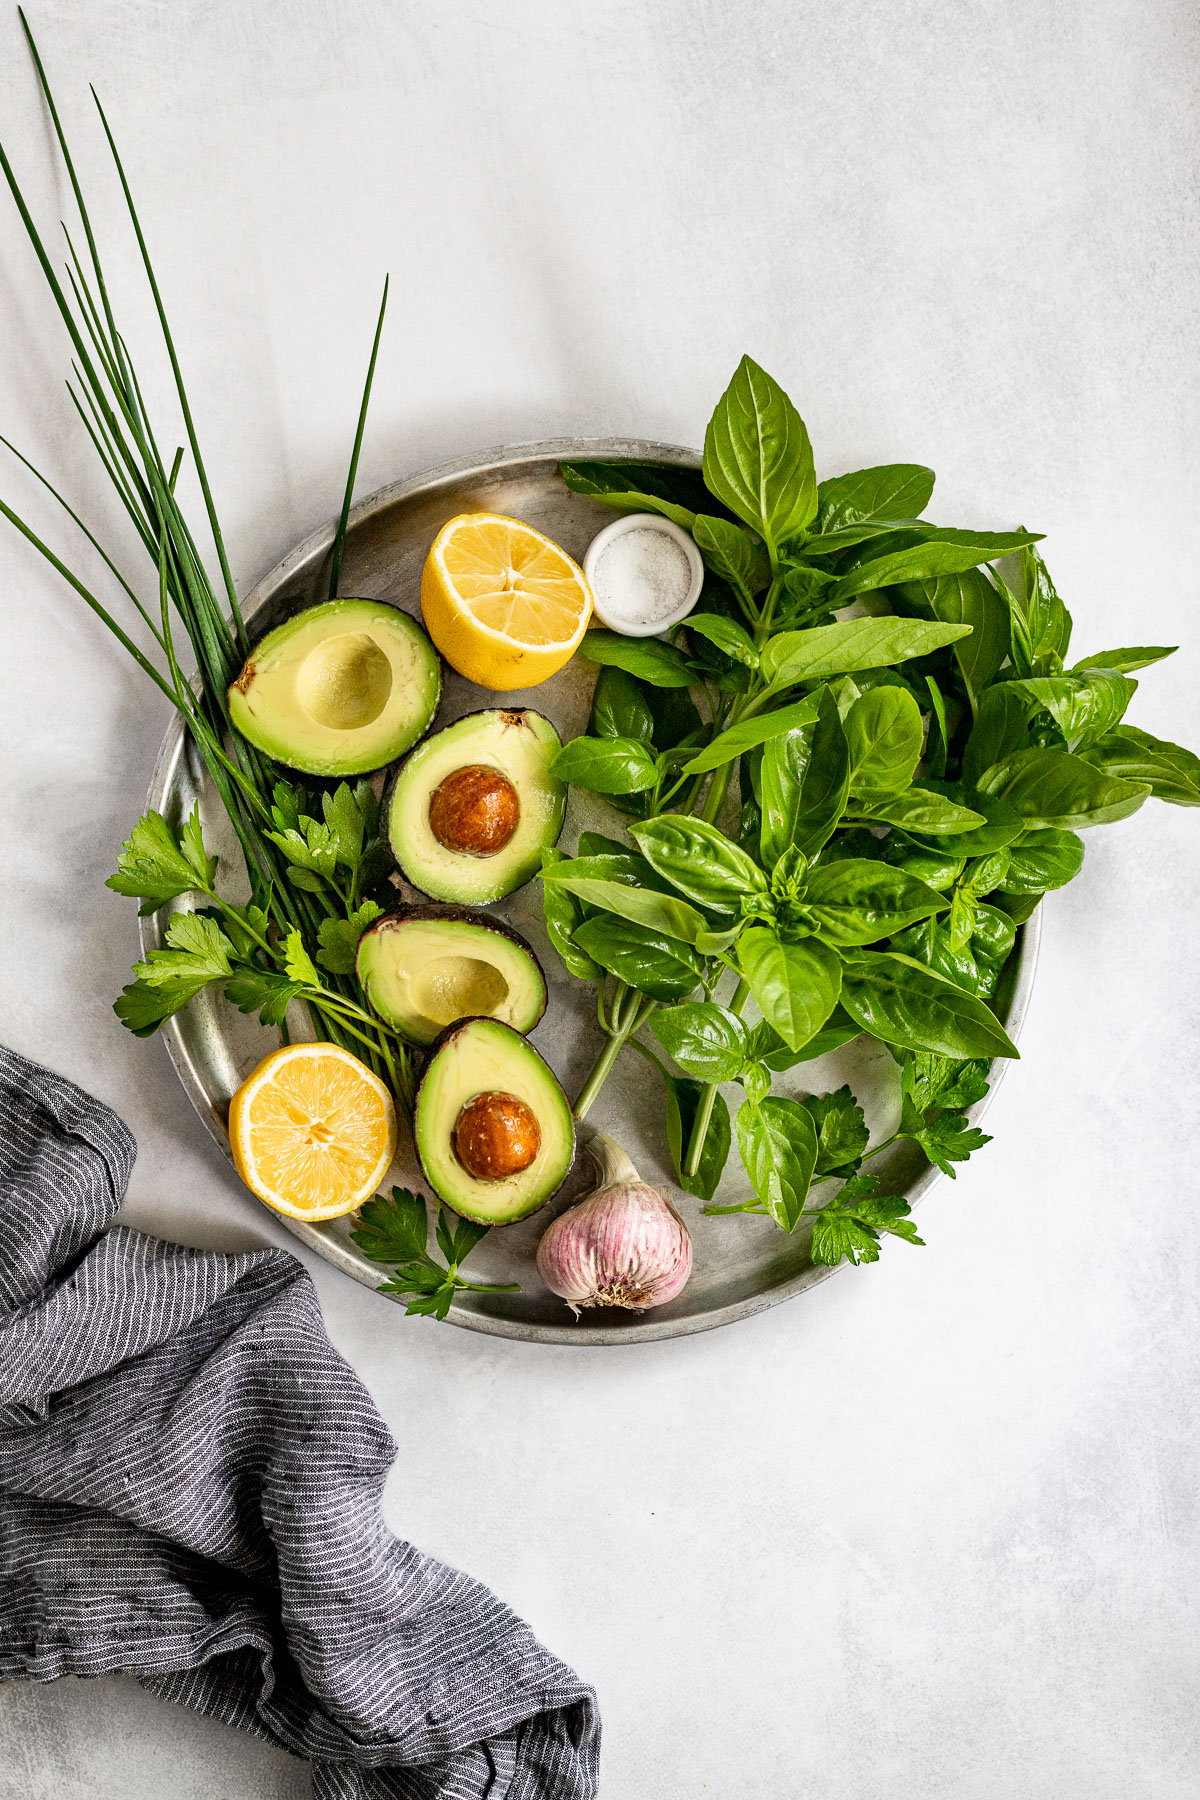 Tray with avocados sliced open, basil, parsley, chives, and lemon.